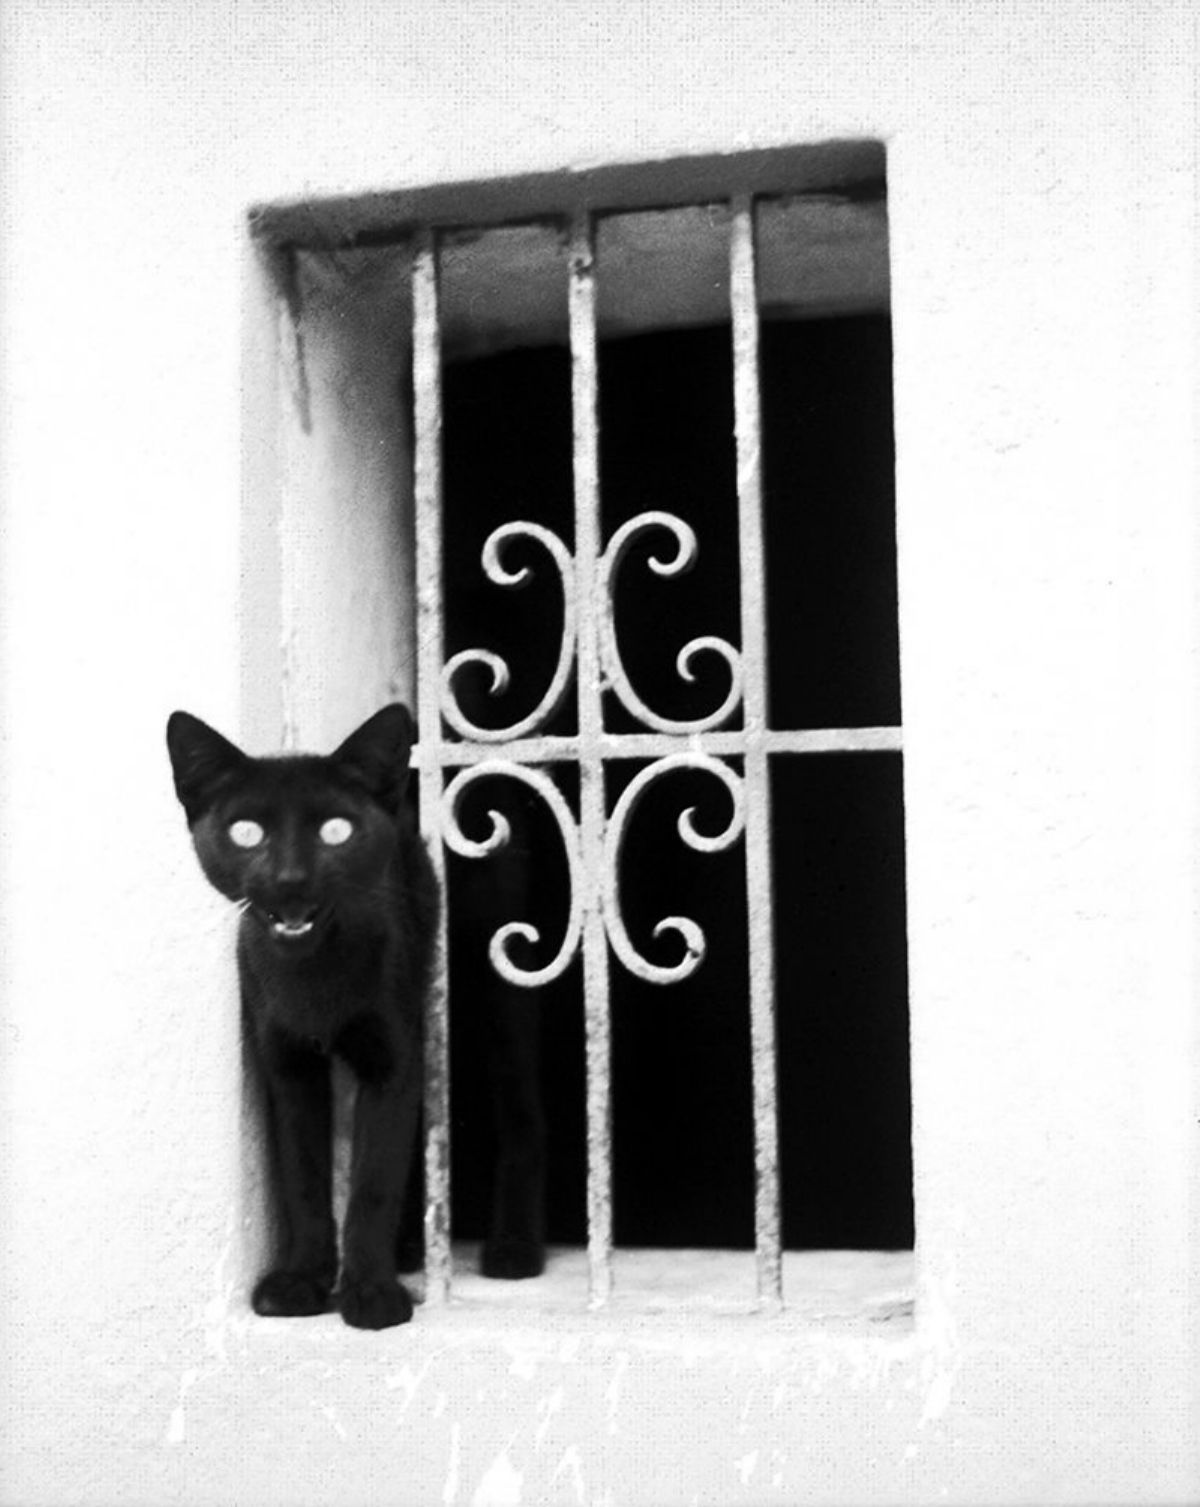 Black cat in old window artwork by Juan Borja - art listed for sale on Artplode